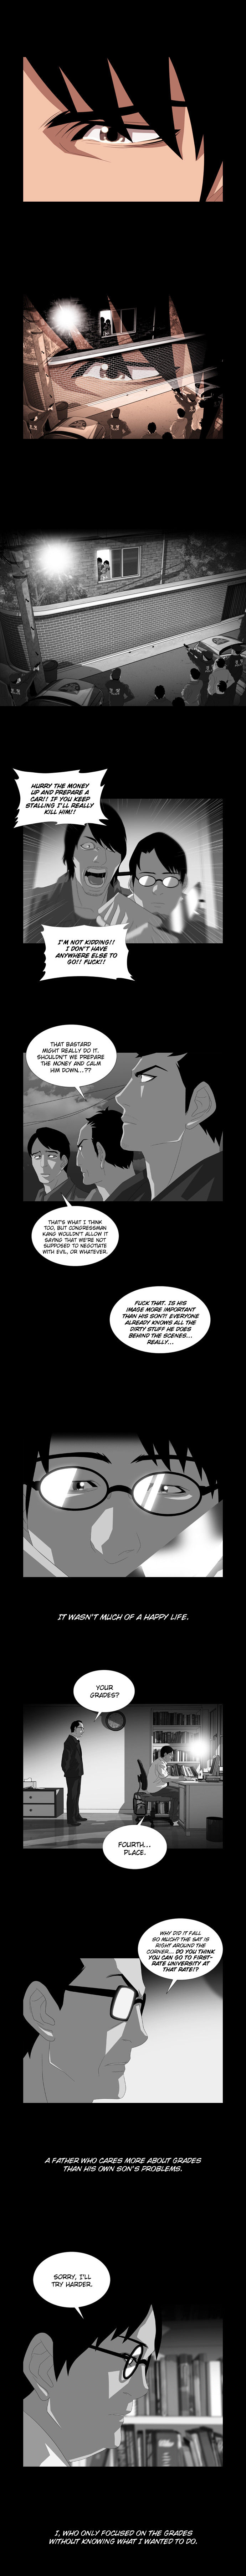 Marionette (WOO Kang-Sik) 16 Page 2